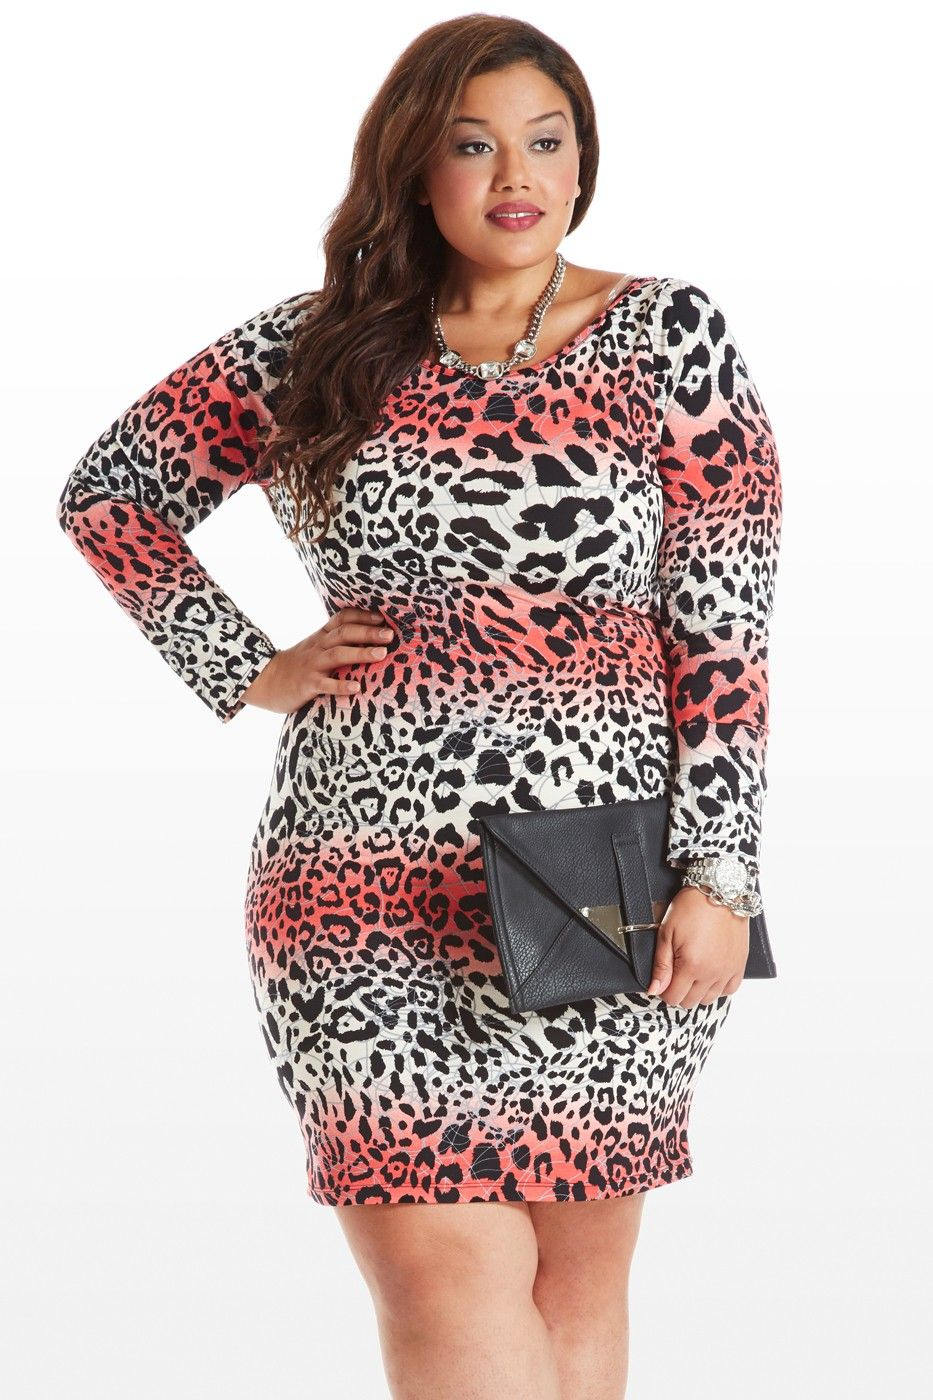 bf9d269d9f Plus Size Clothing New Arrivals. She s All Cat Animal Print Dress